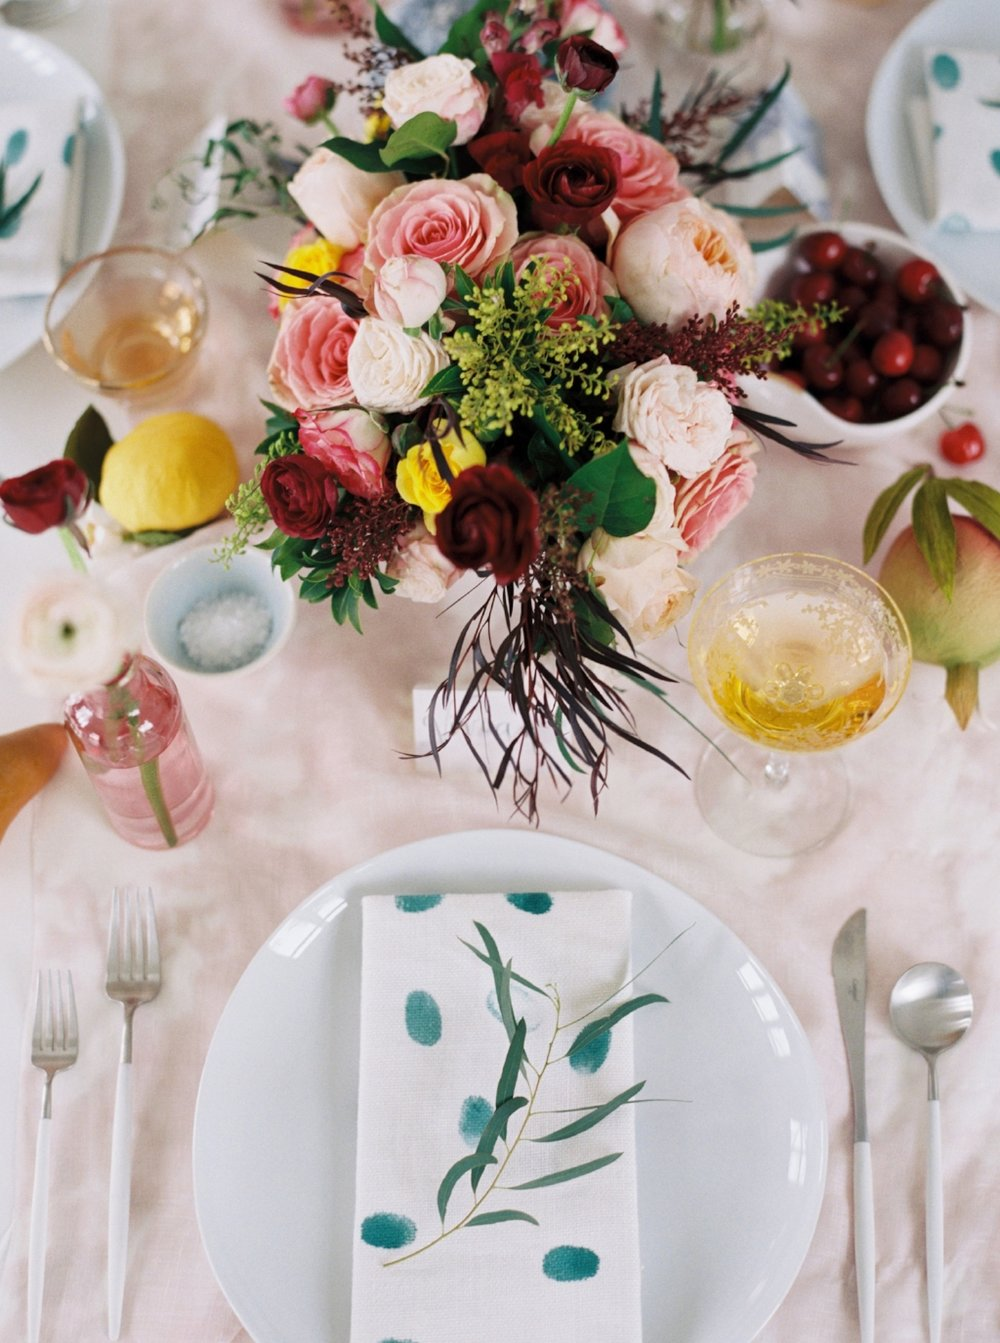 12th-Table-WEDDING-RENTALS-NASHVILLE-Design-Tips-Hosting-ENTERTAINING-Series-HannnahCrowell-Photograph #